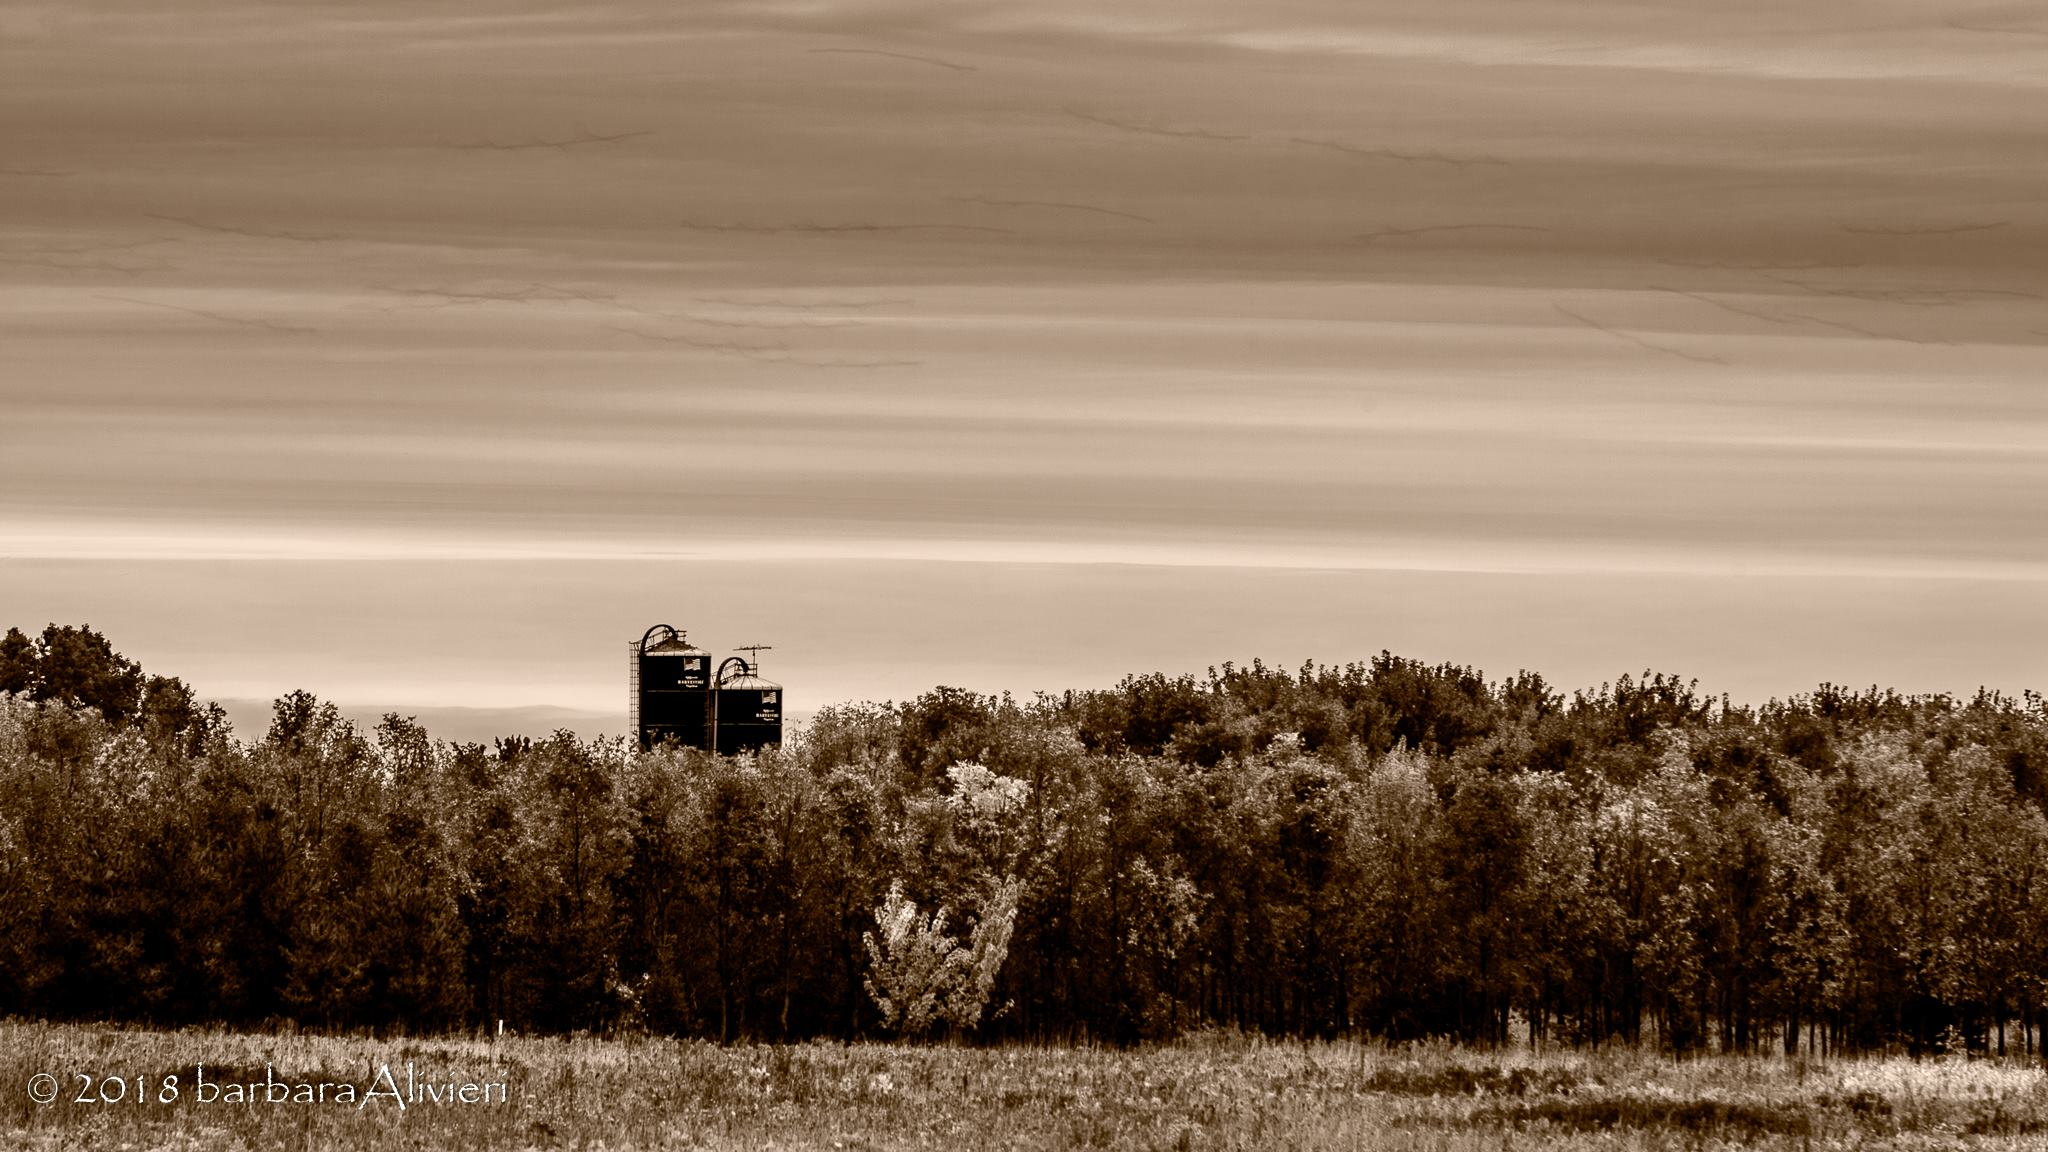 Silos from a farm northeast of where I was staying.